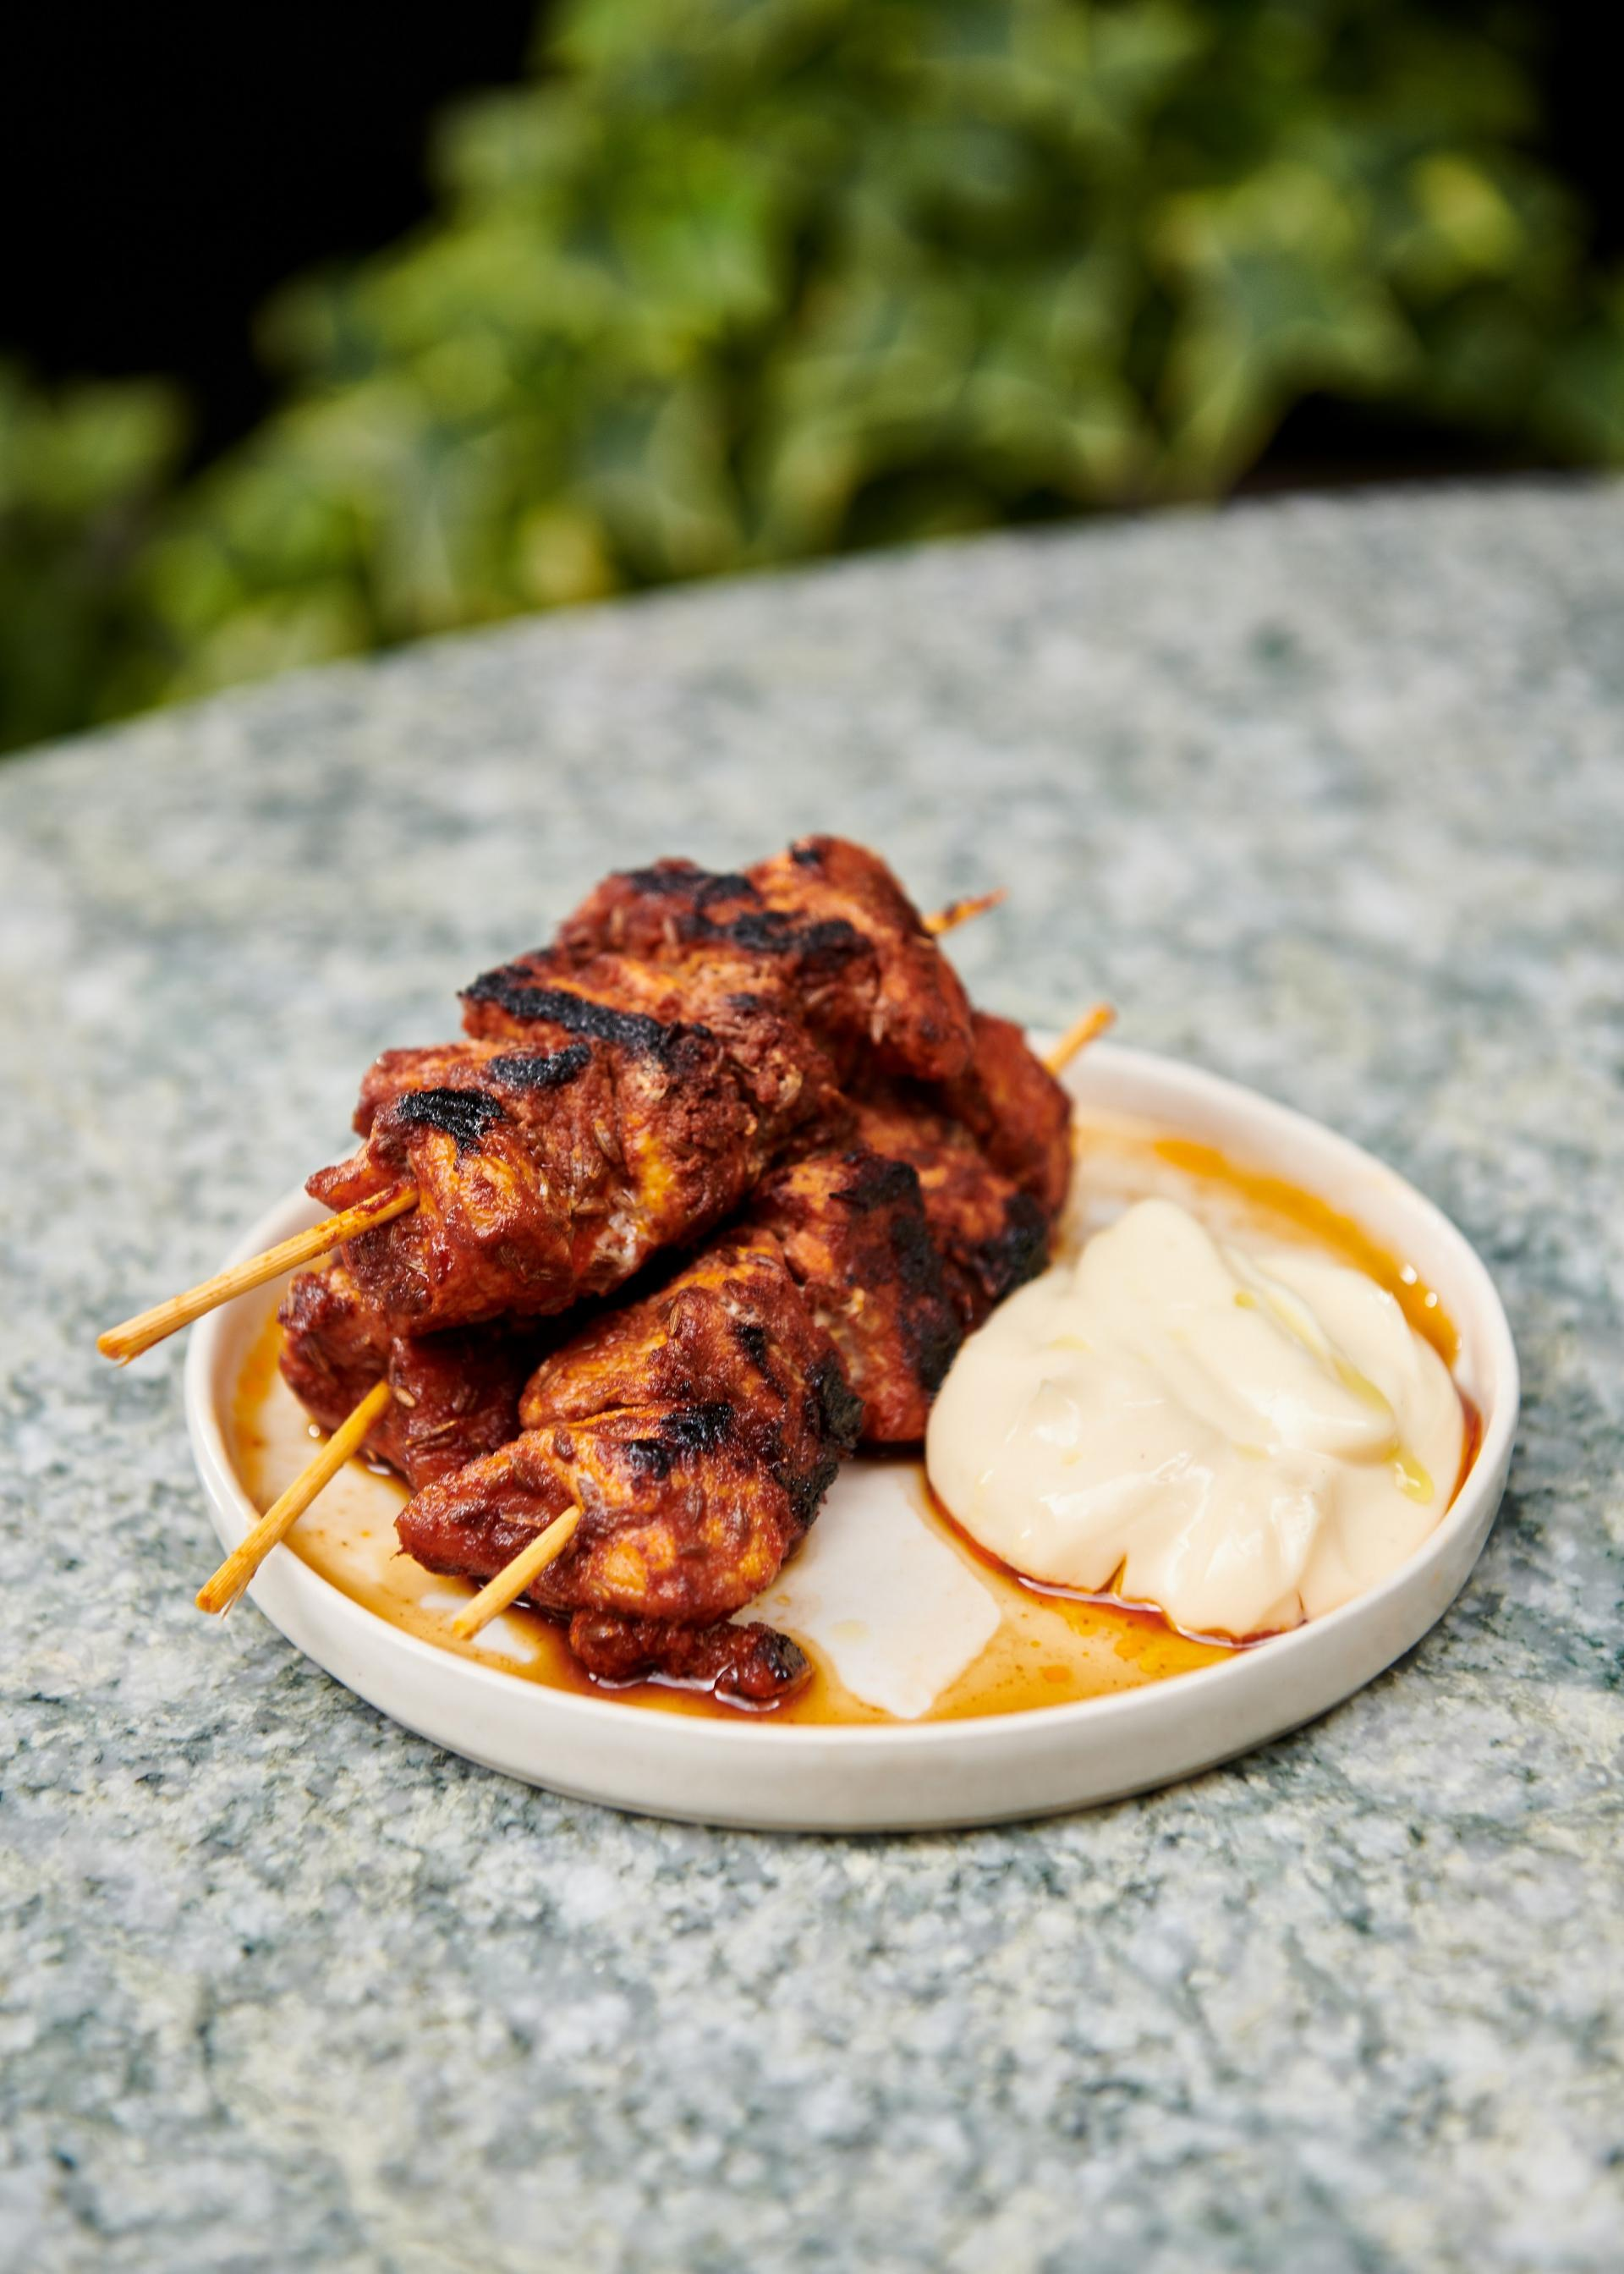 Grilled pork pinchos with almond alioli.